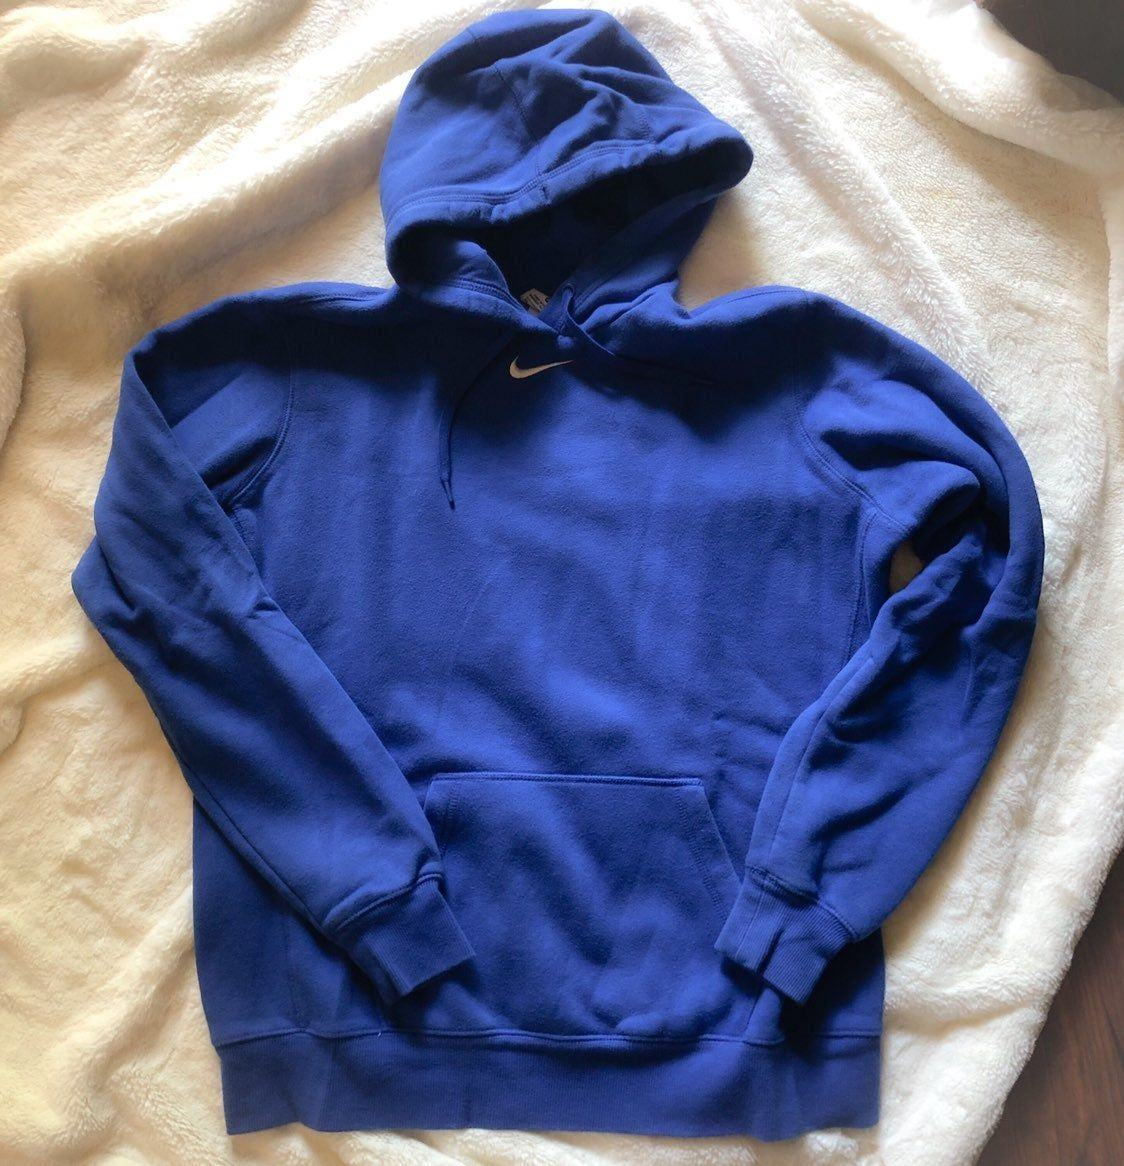 Royal Blue Team Color Nike Women S Hoodie Size Xl Fitted Athletic Style Hoodies Womens Hoodies Athletic Fashion [ 1166 x 1124 Pixel ]